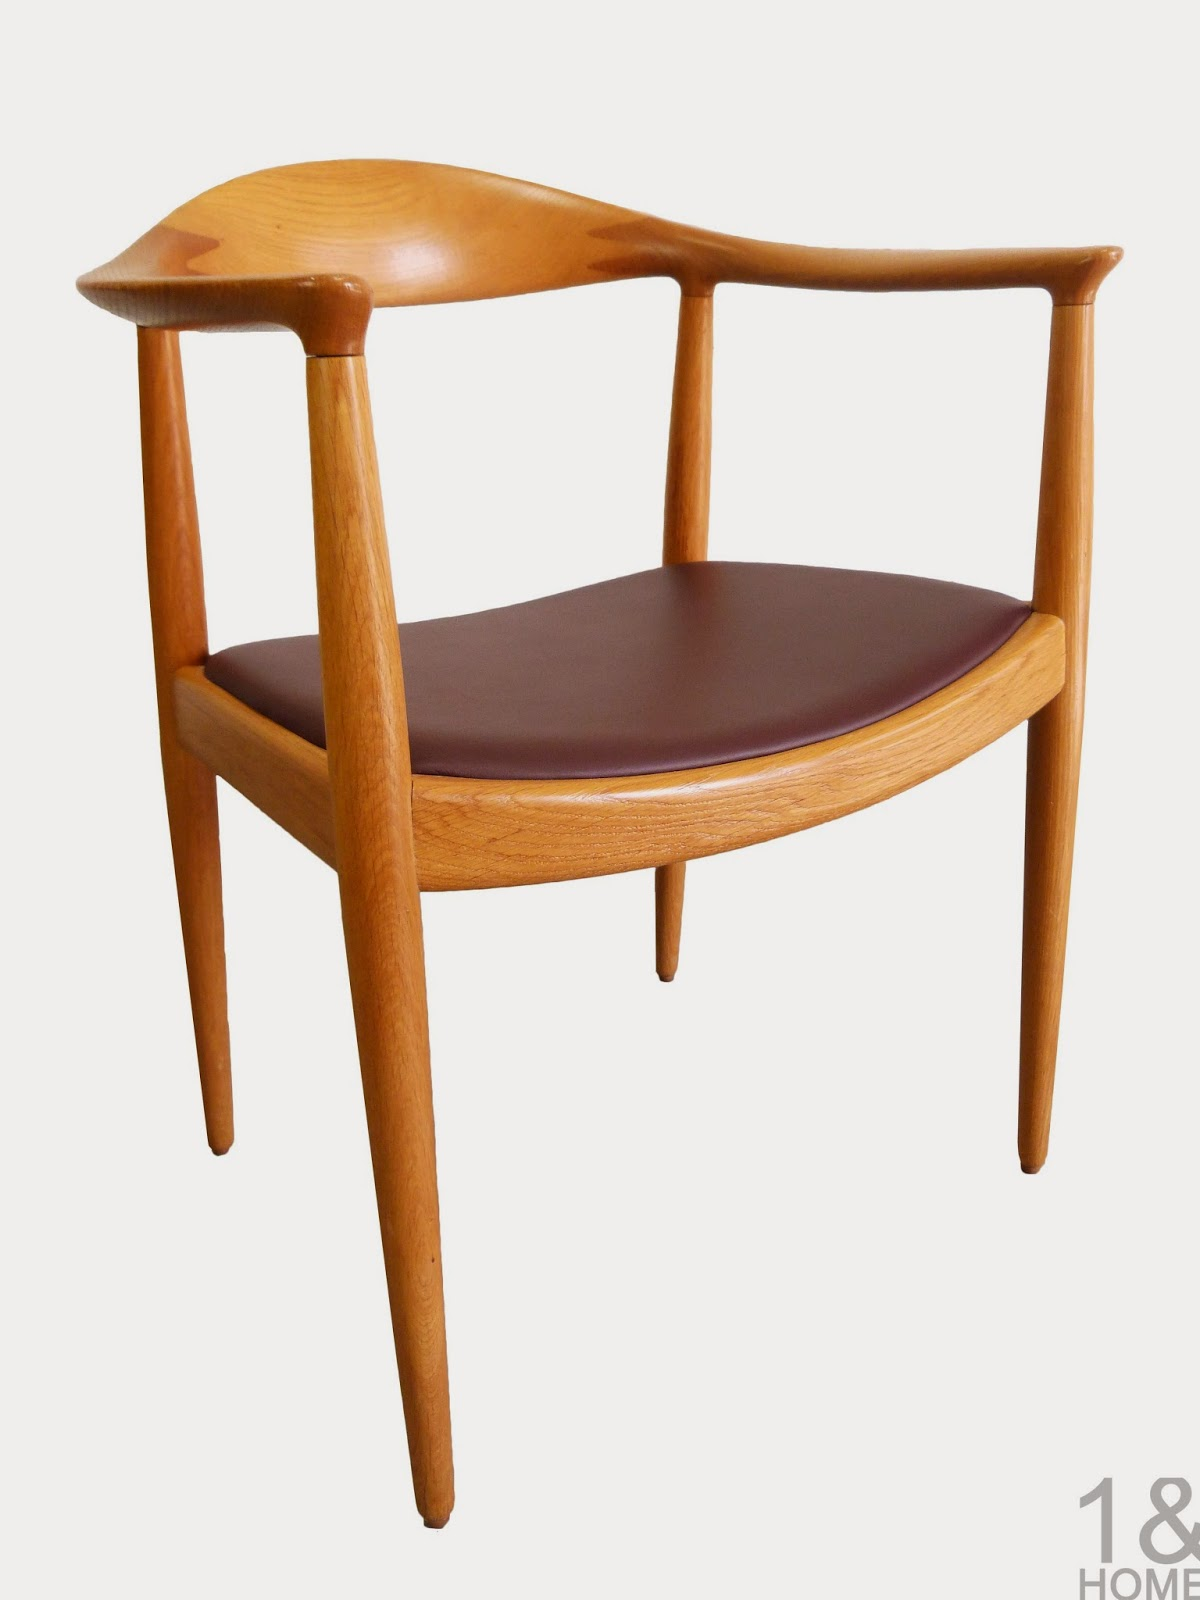 Modern, Mid Century, Danish, Vintage Furniture Shop, Used ...